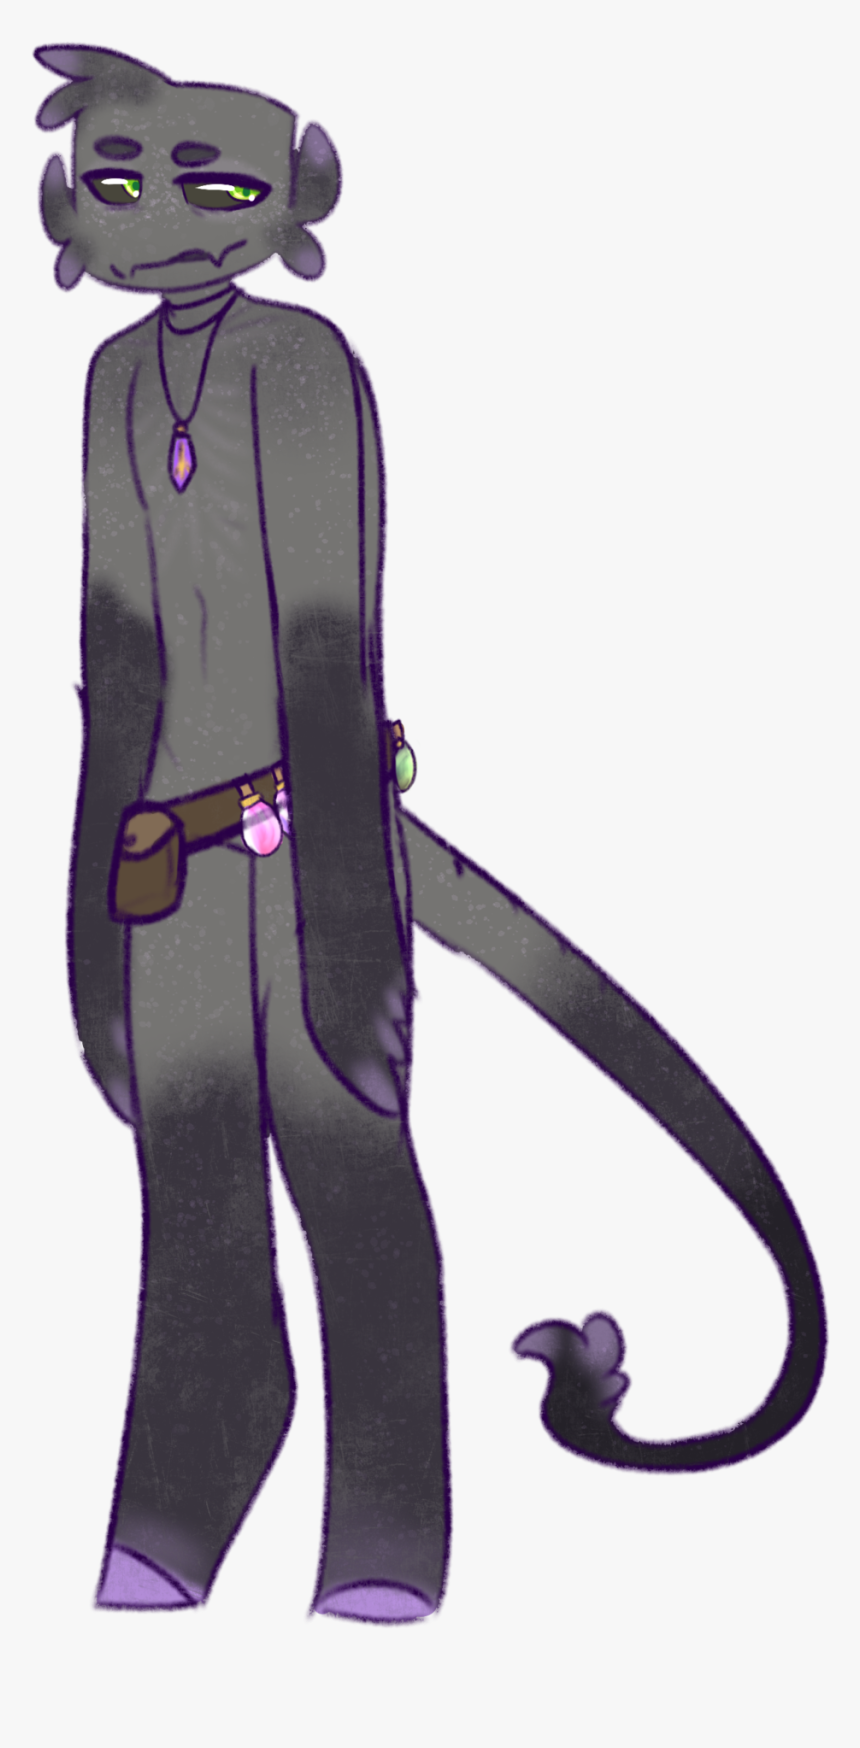 New Enderman Oc, His Name Is Jax And He Makes Potions - Cartoon, HD Png Download, Free Download